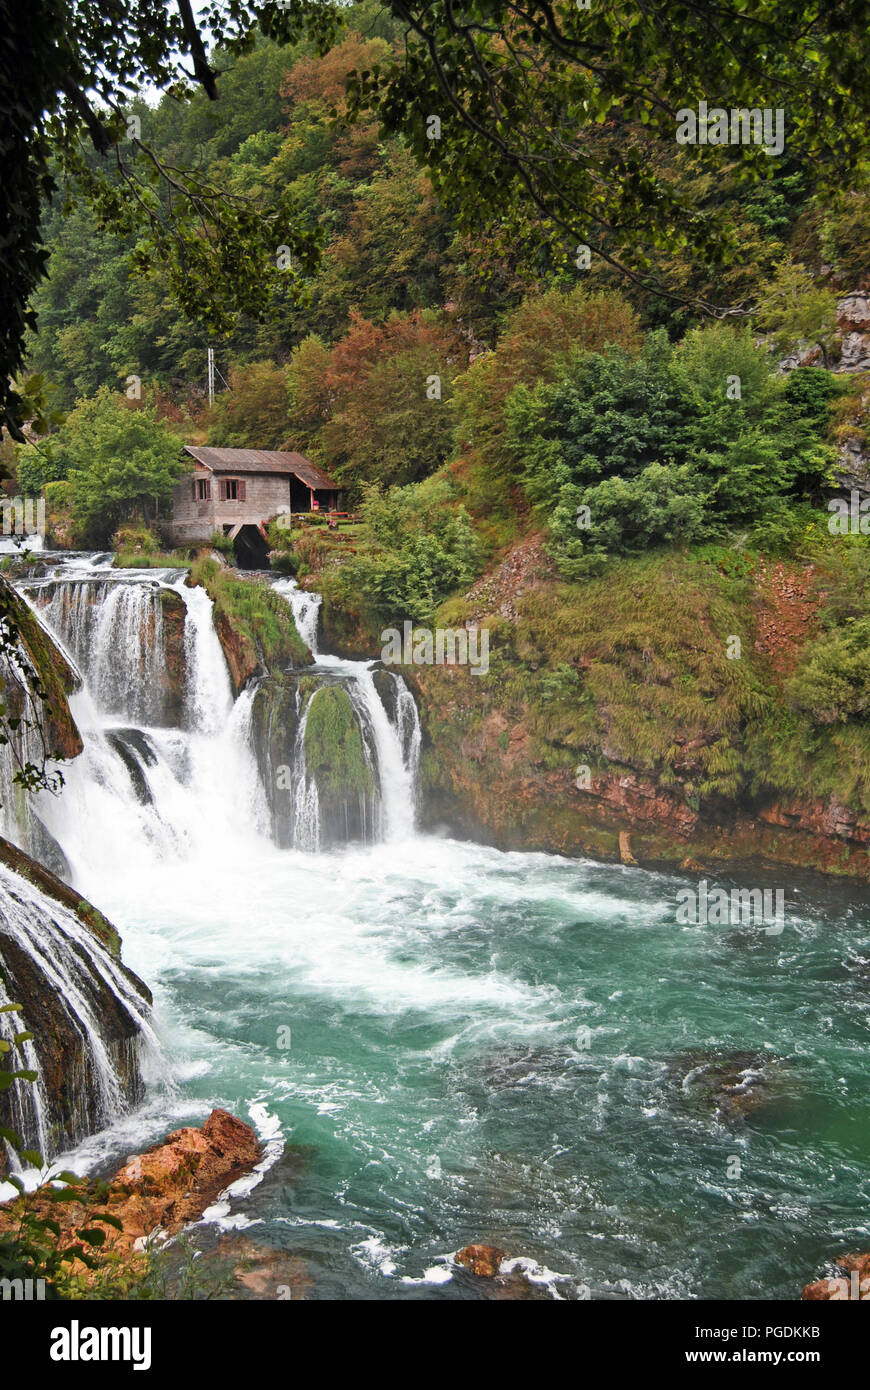 Waterfalls in the Una National Park, Bosnia-Herzegovina - Stock Image